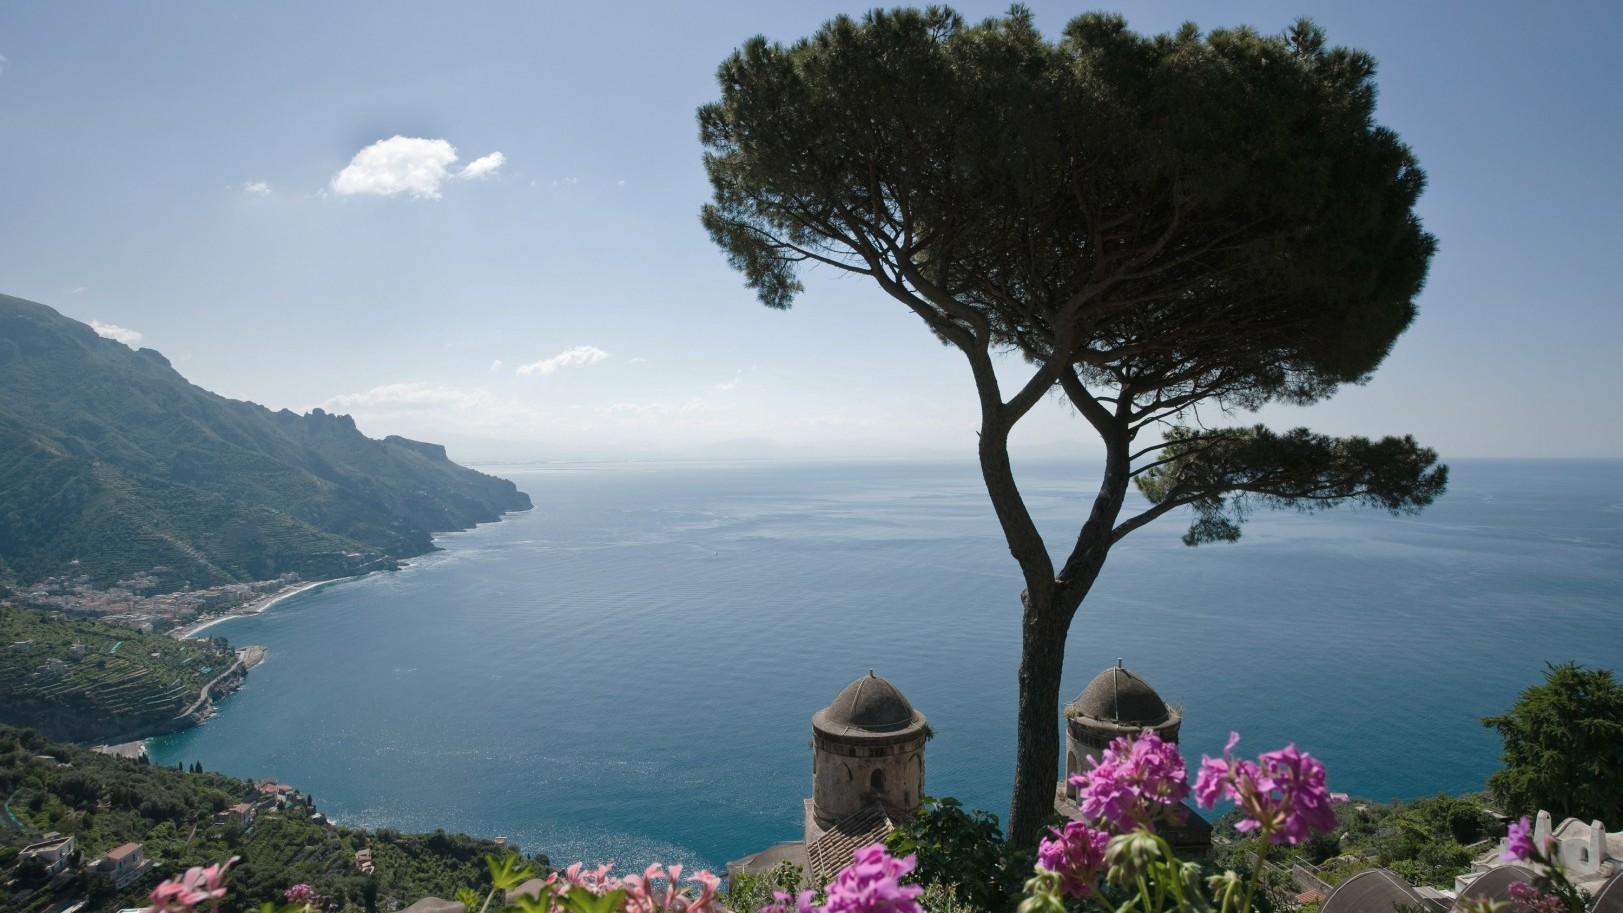 Wedding planning on Amalfi coast